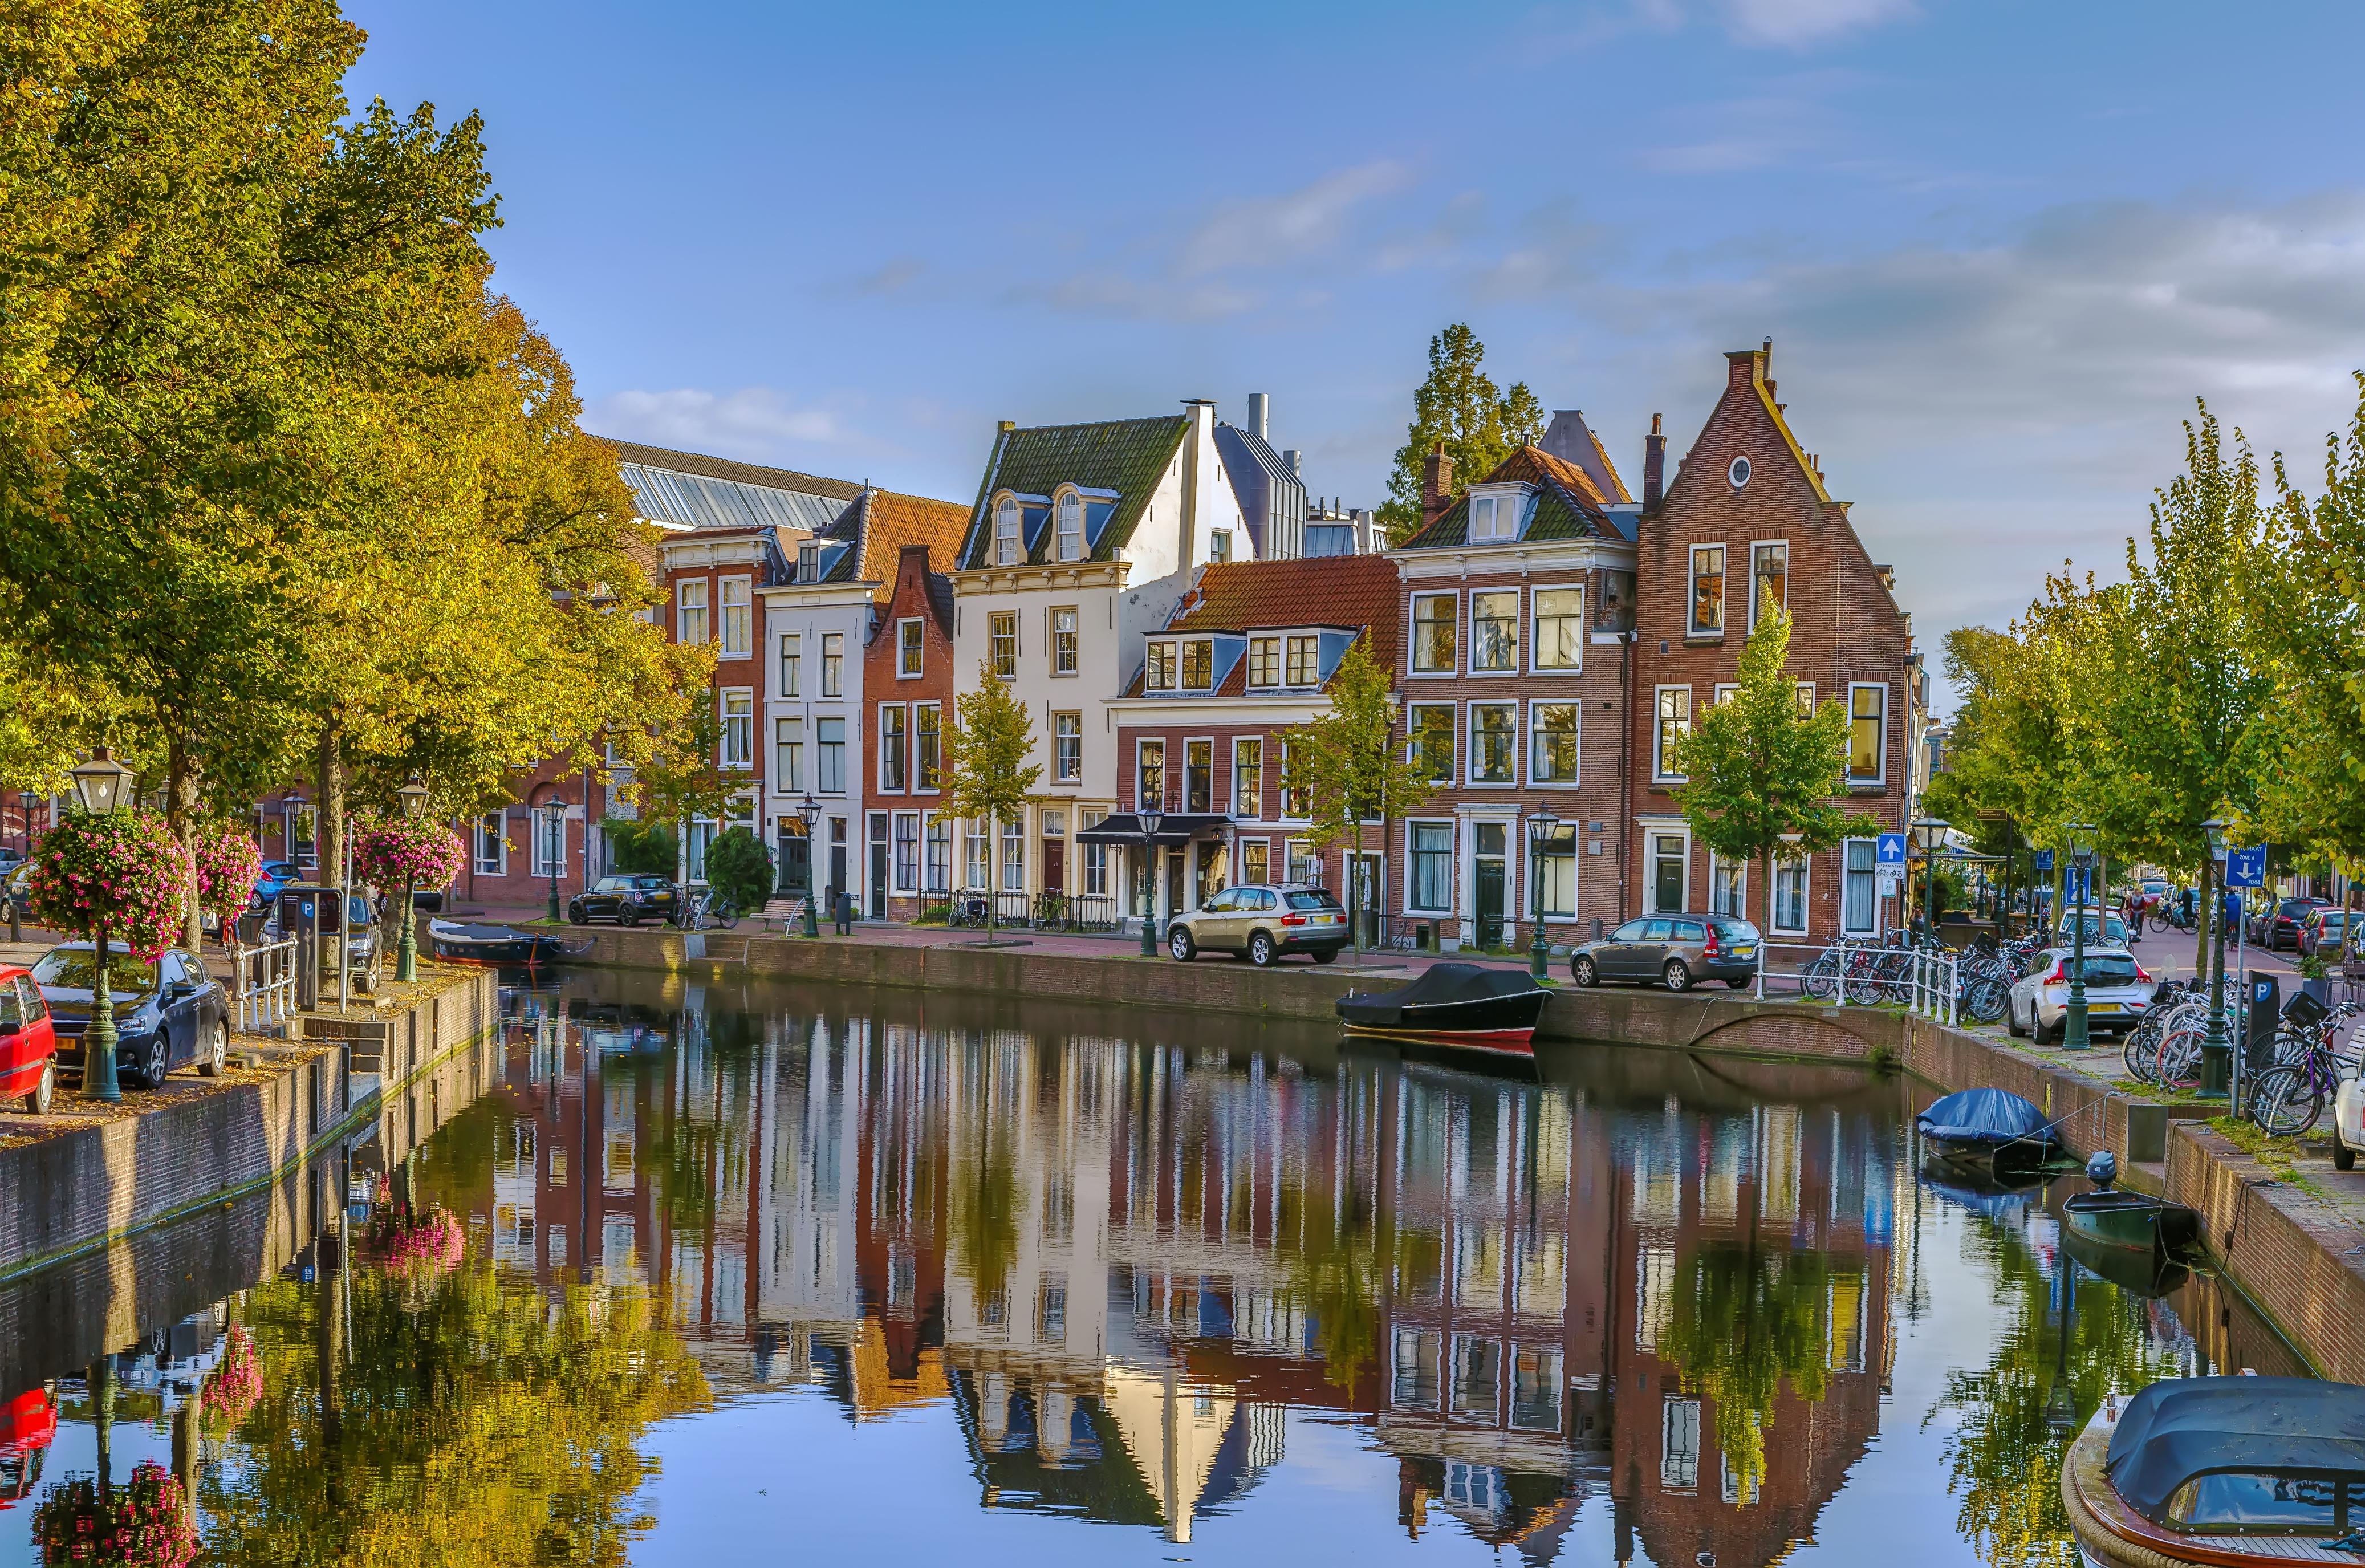 The city of Leiden (NL), close to HALIX BV